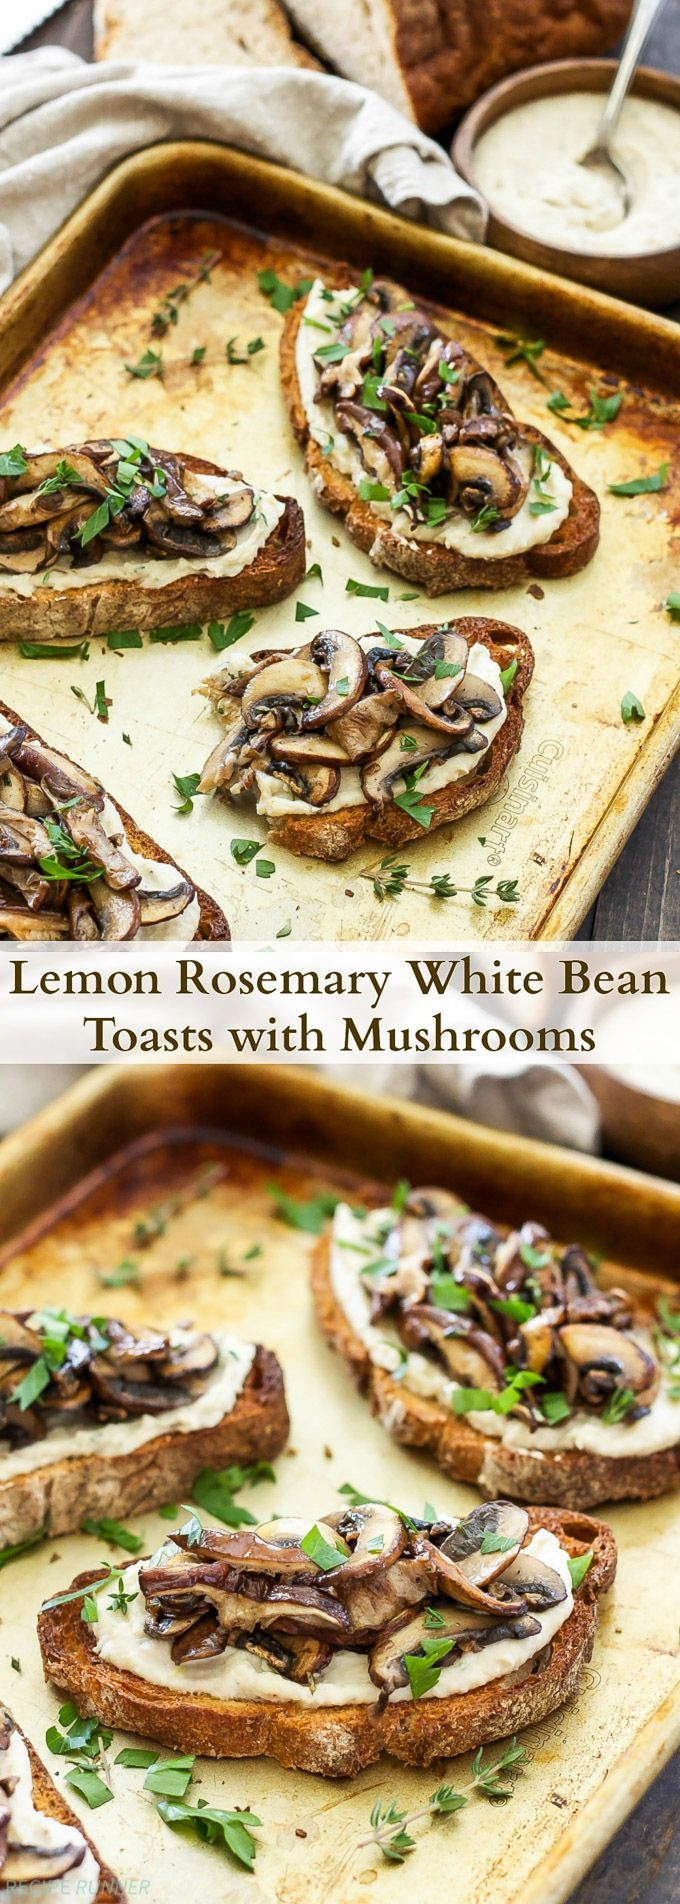 Lemon Rosemary White Bean Toasts with Mushrooms | Creamy white beans spread on whole grain toast and topped with sautéed mushrooms.